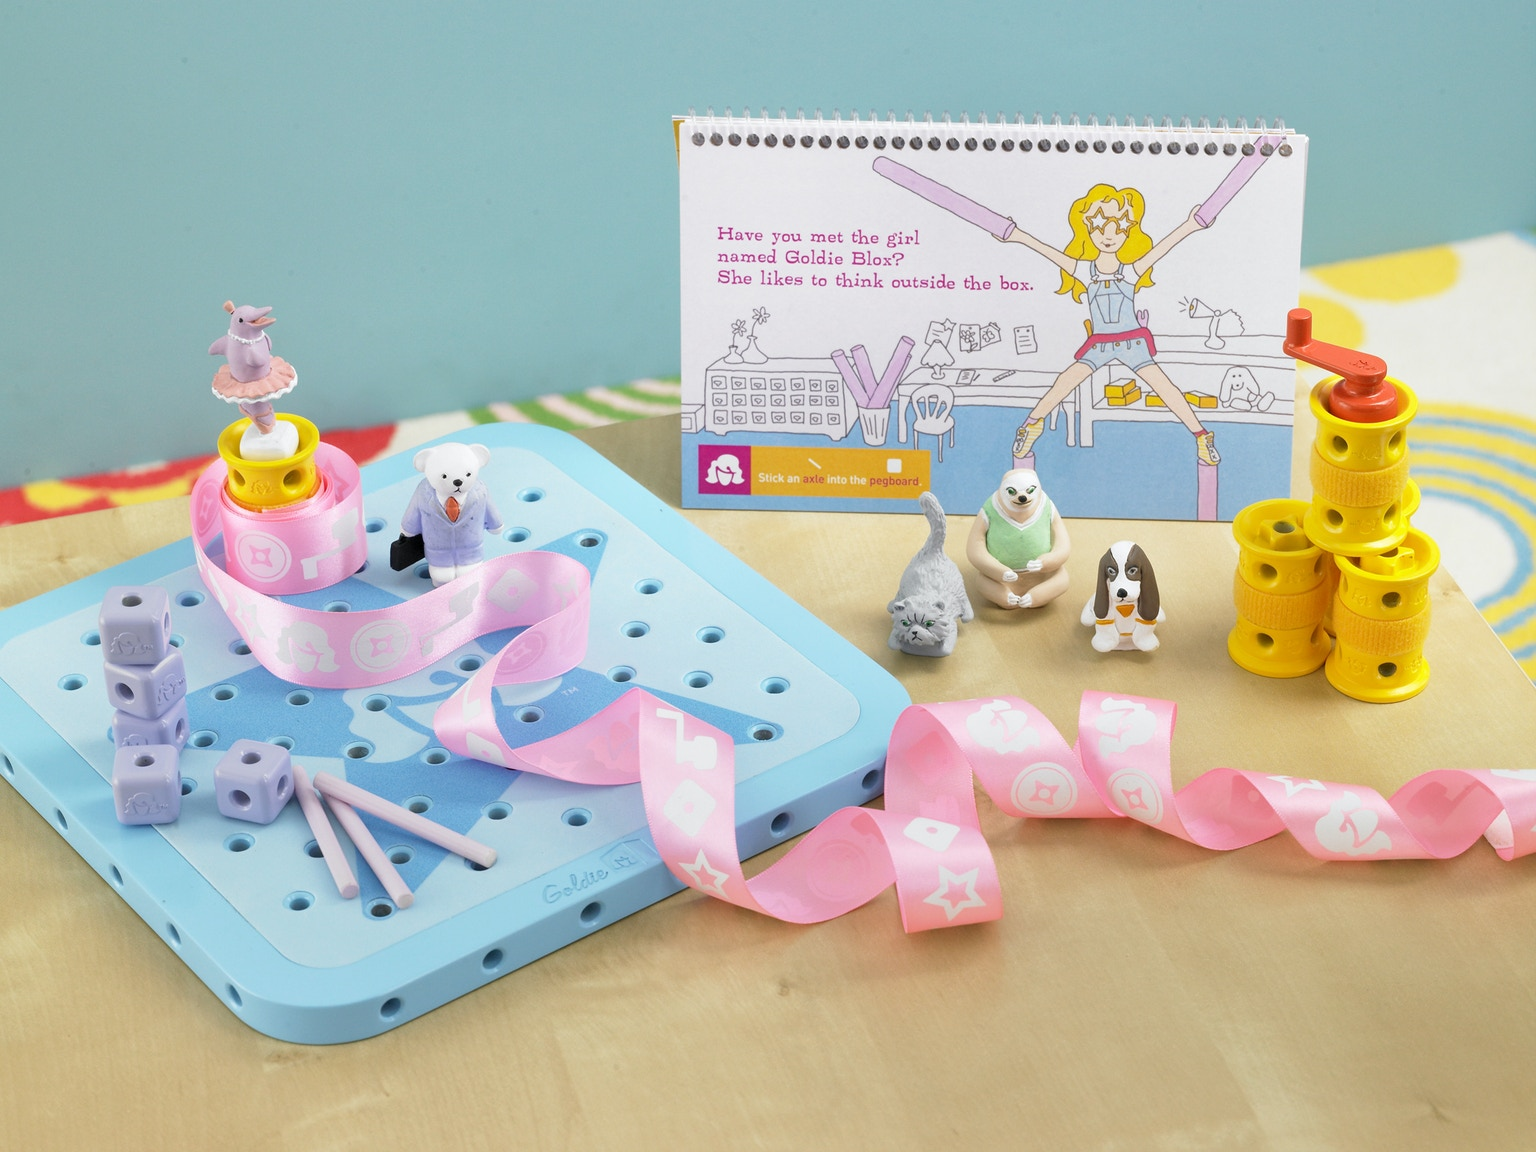 Toys For Engineers : Goldieblox the engineering toy for girls by debbie